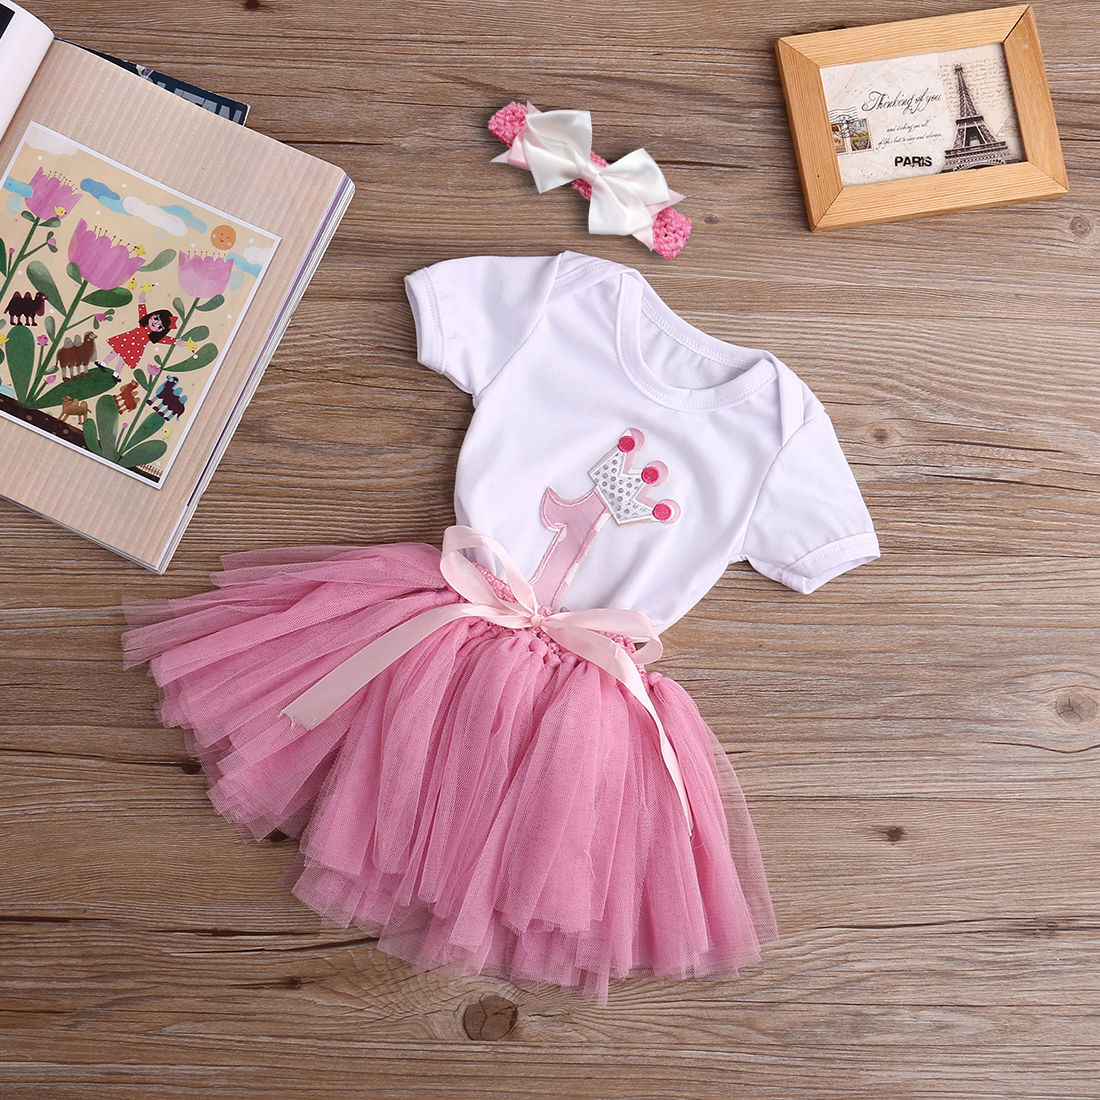 3PCS Newborn Baby Girl 1st Crown Romper Bodysuit Headband Birthday Tutu Skirt Outfit Hot Sale